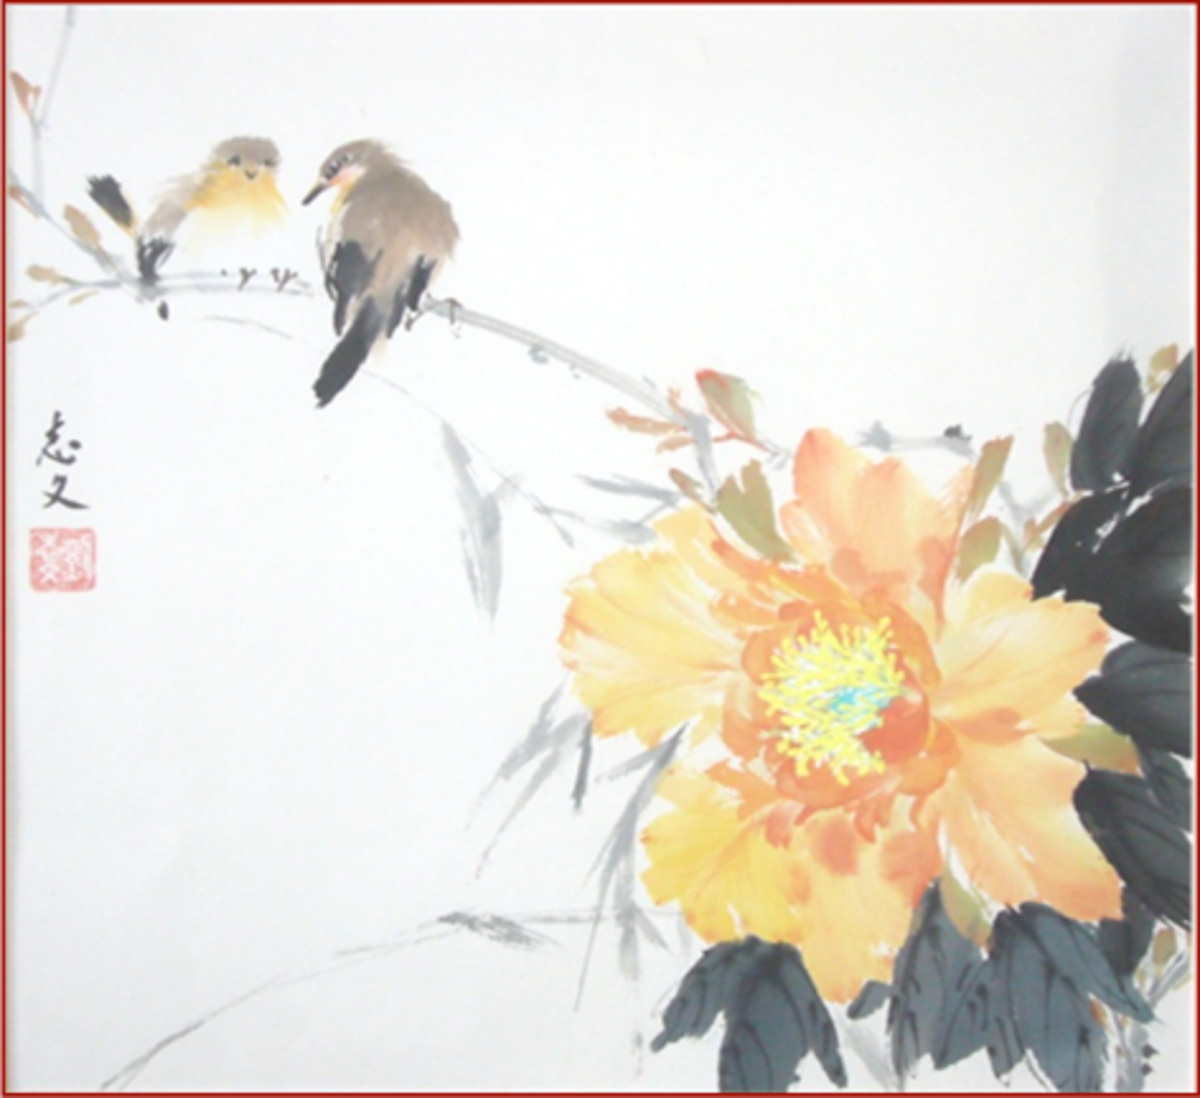 Chinese Brush Painting - Expressing the Chi